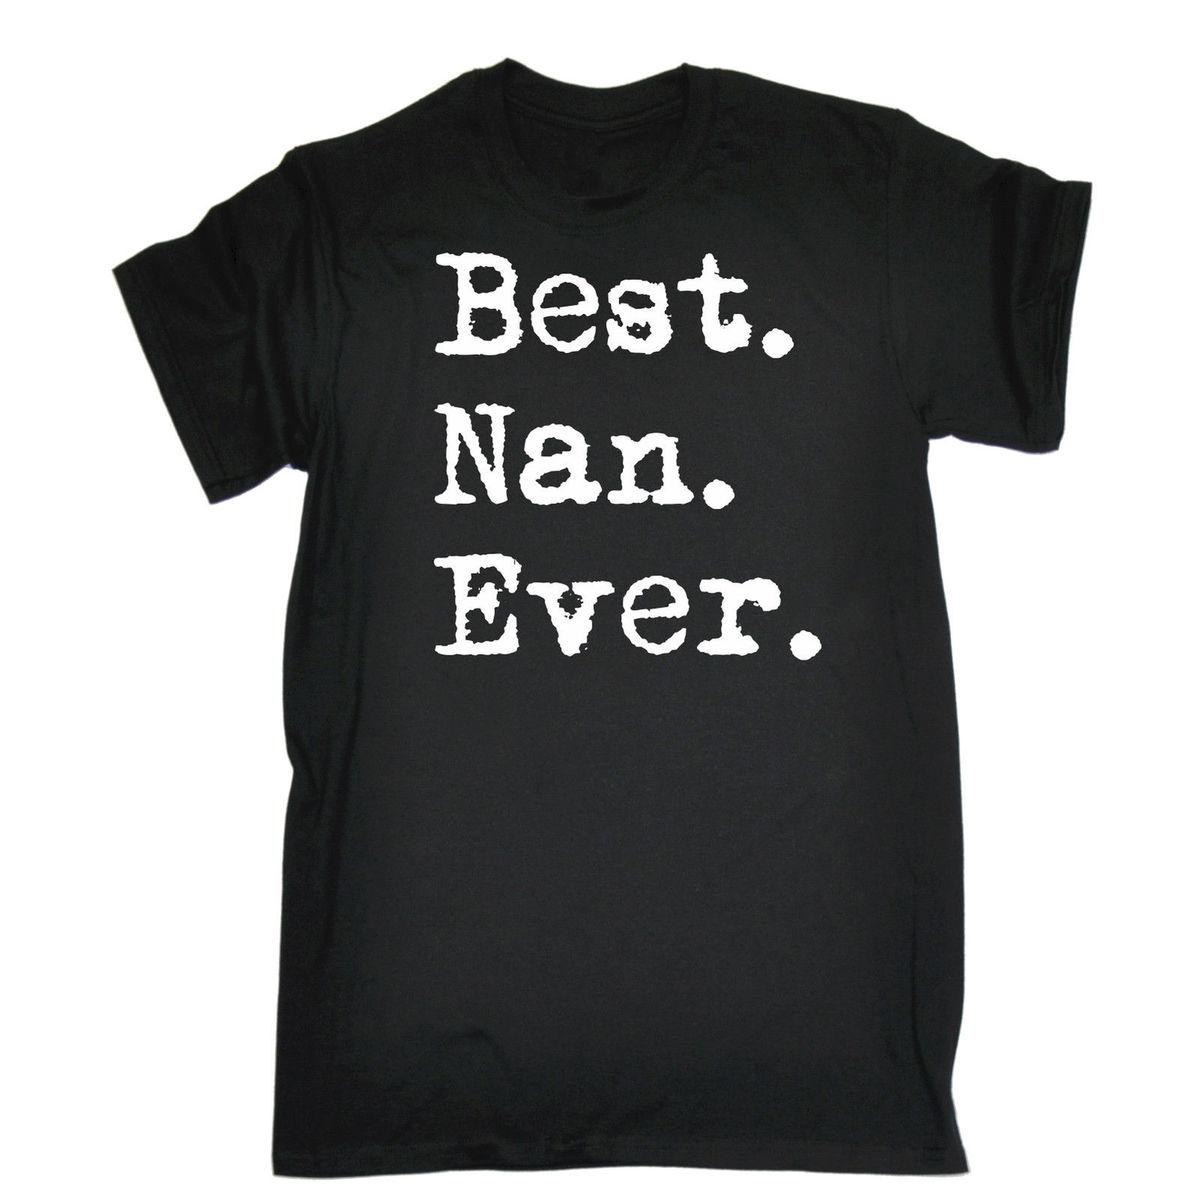 BEST NAN EVER T SHIRT Gran Granma Nanna Birthday Funny Gift Present Coolest Shirts Shirt Slogans From Amesion 1145